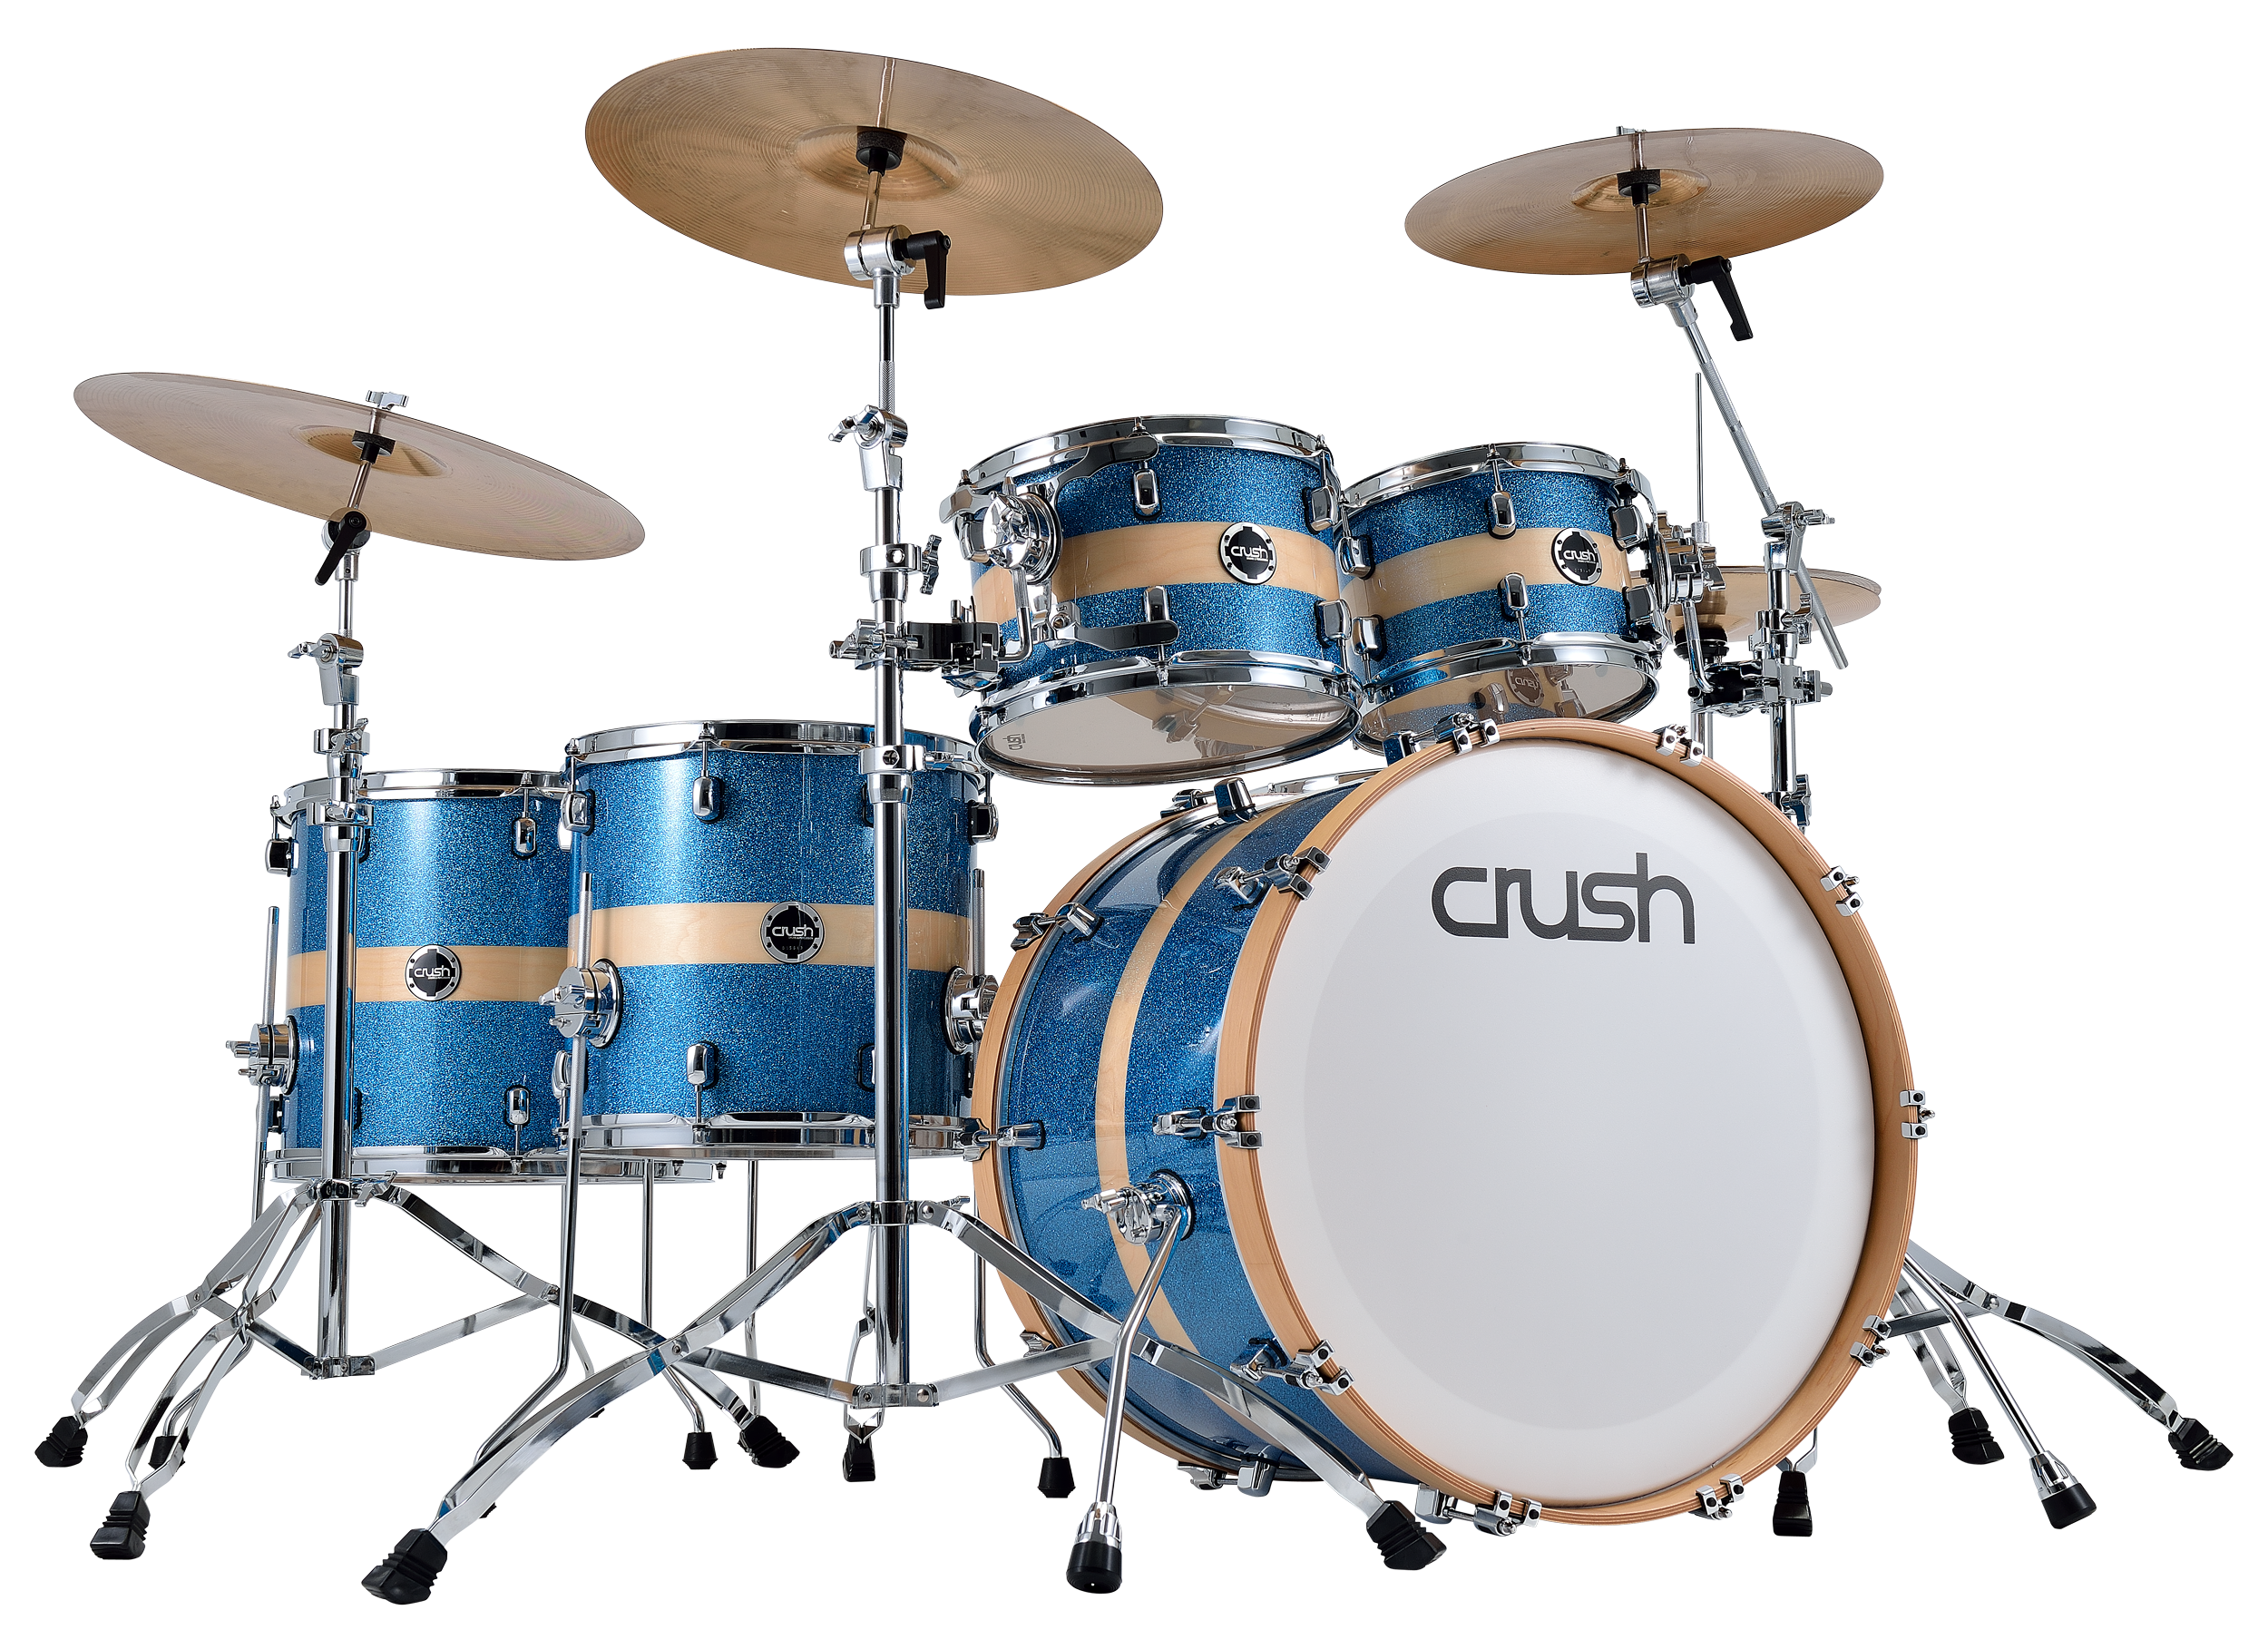 crush drums and percussion drumsets snare drums and hardware